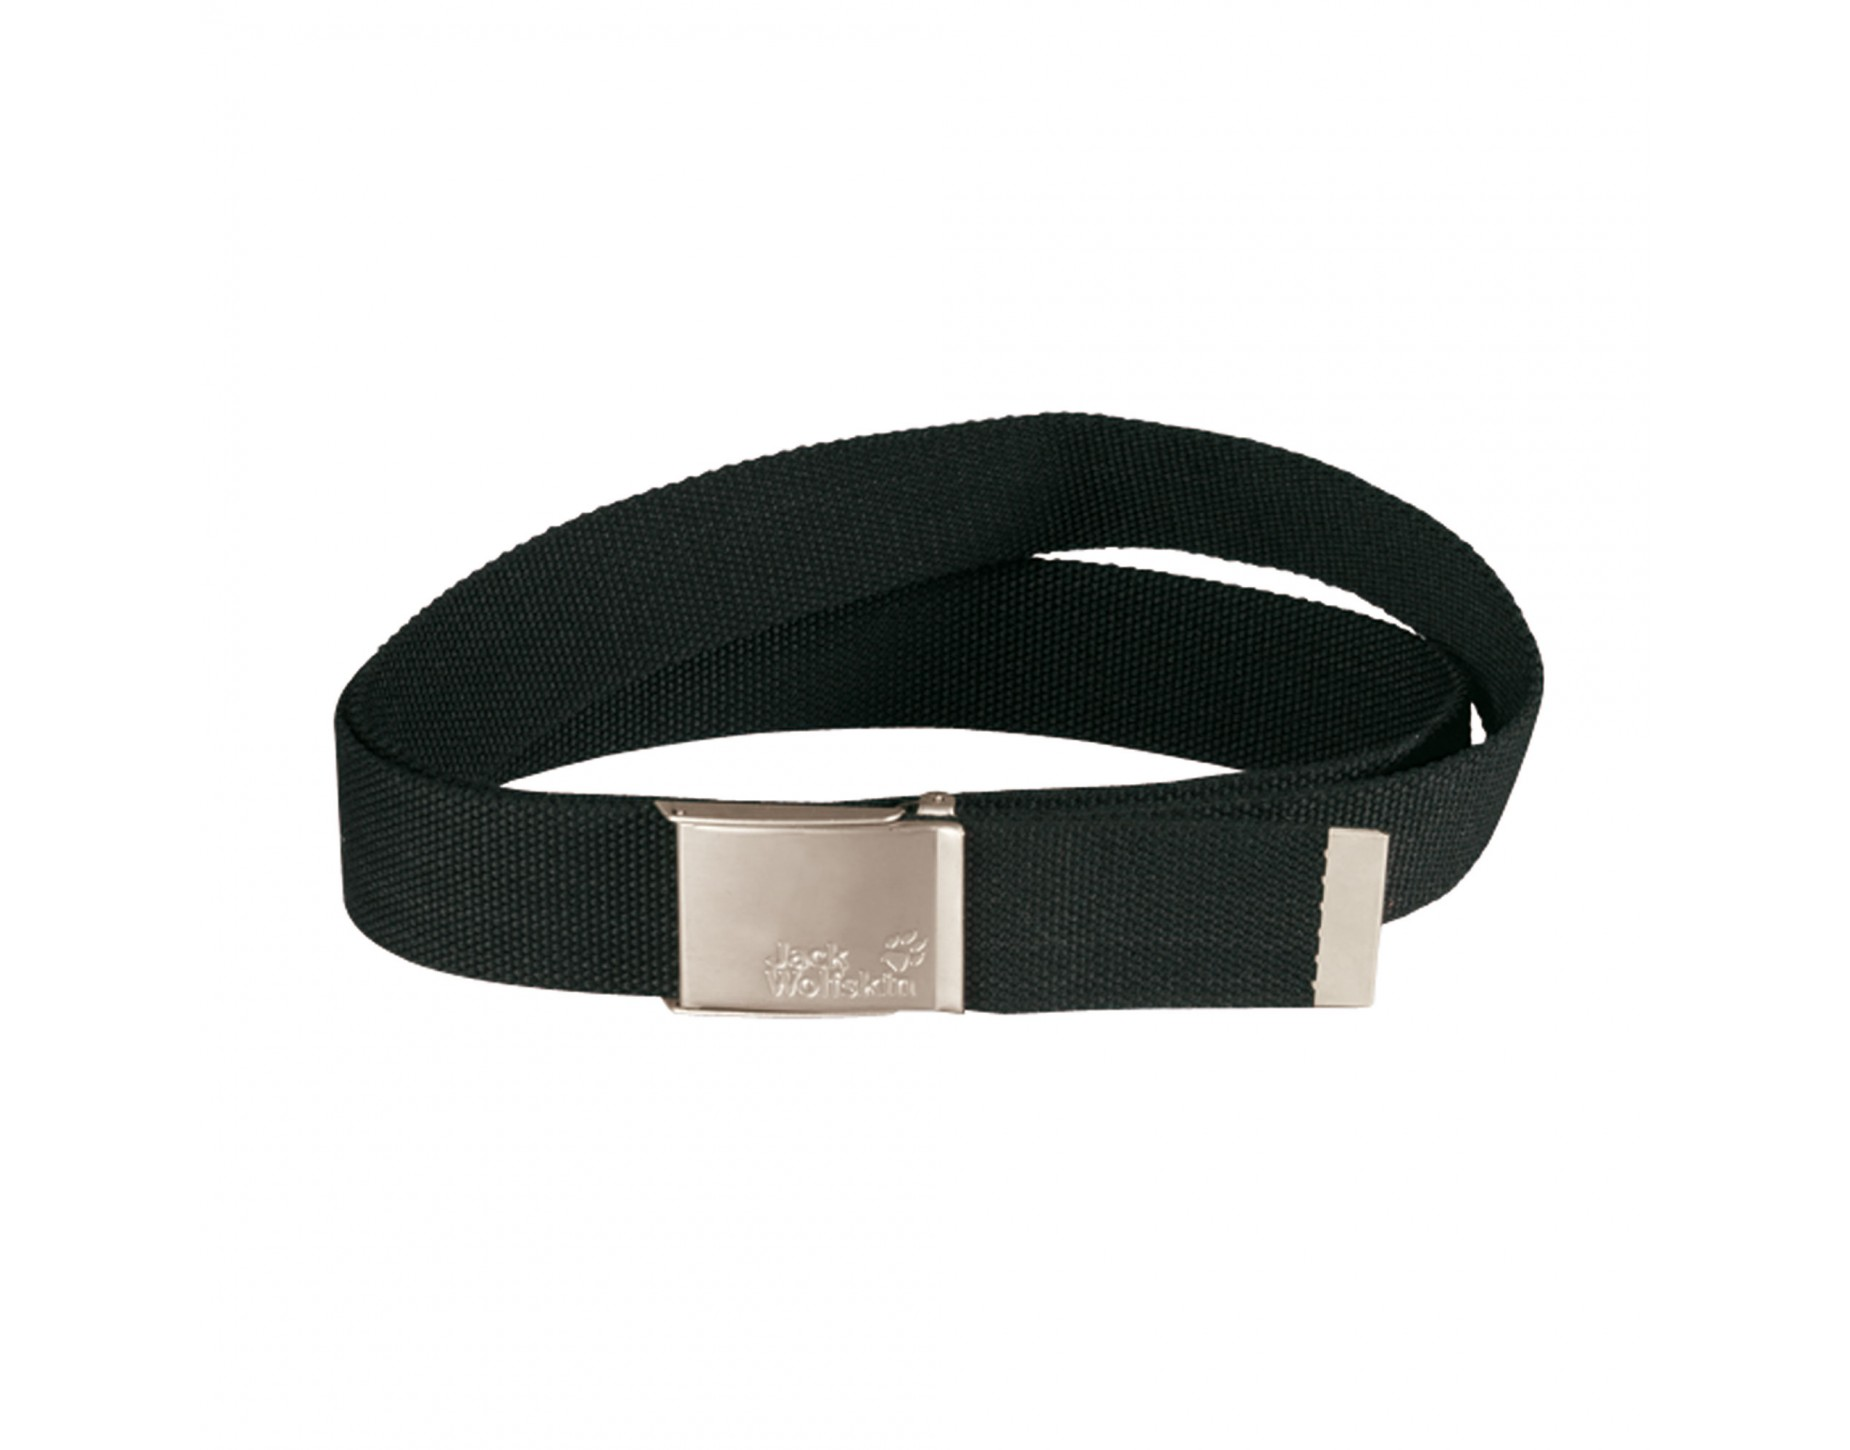 wolfskin webbing belt wide everything you need